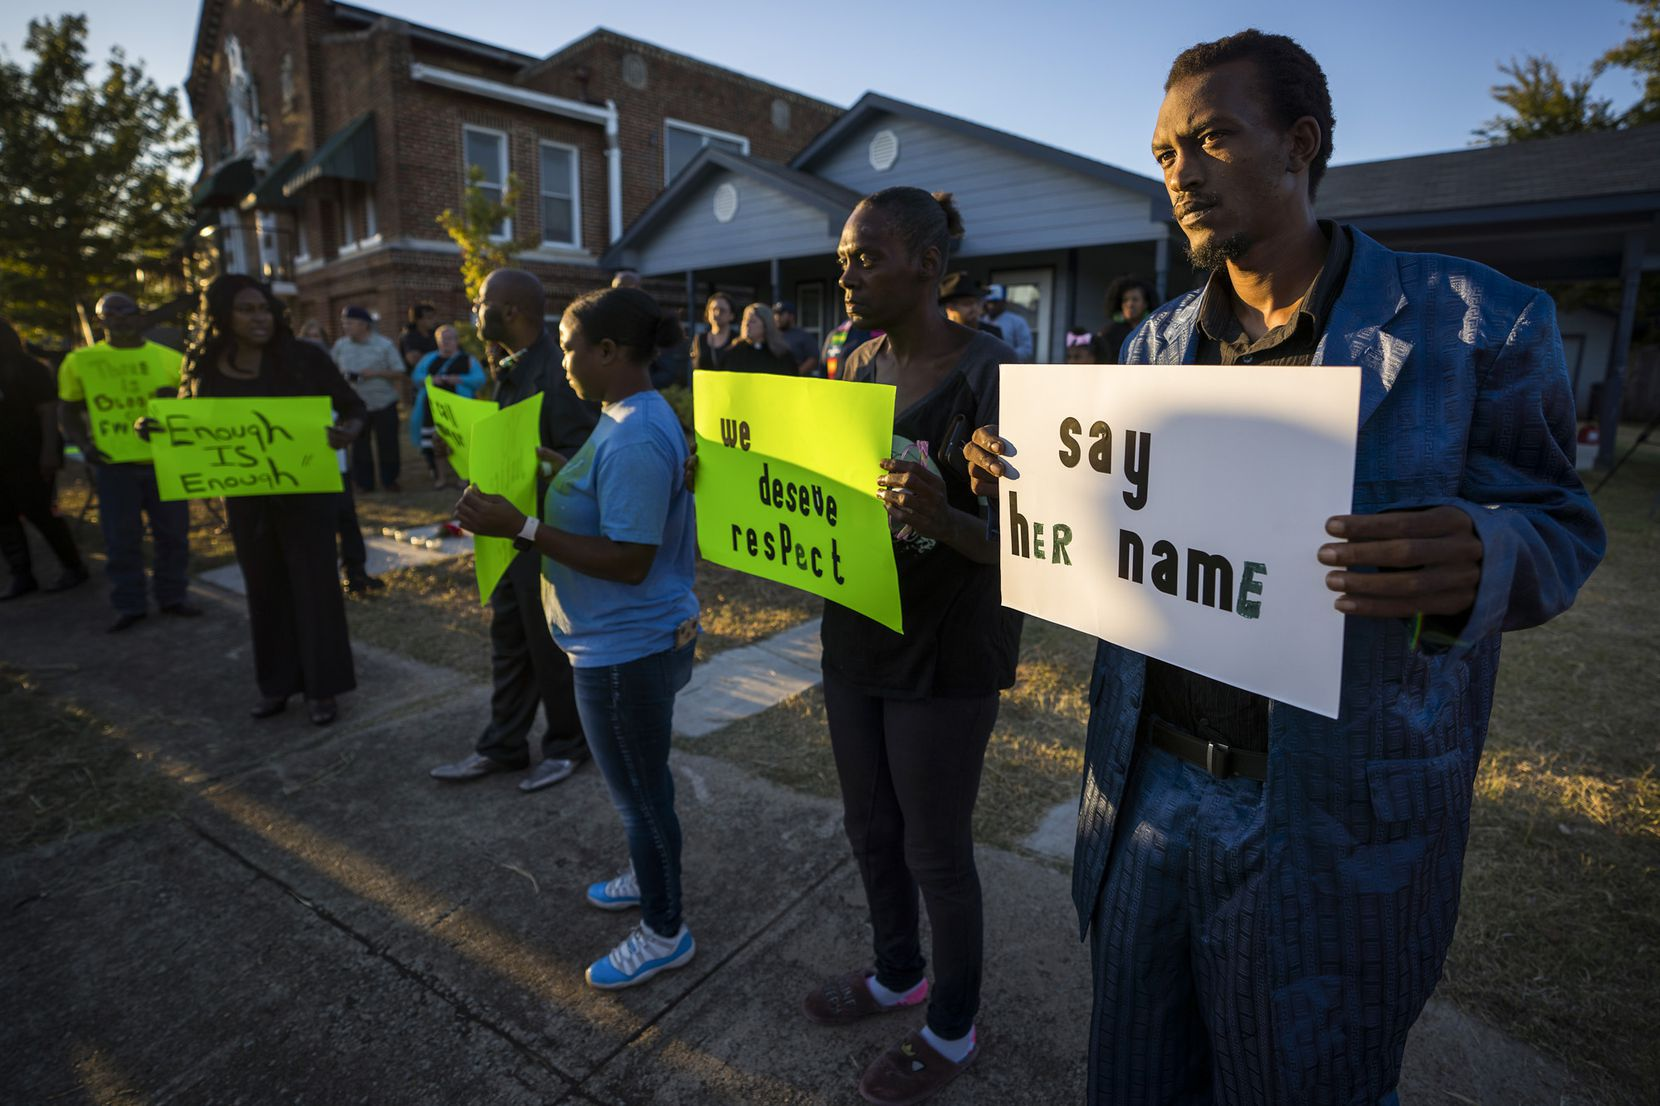 Protestors gather outside the house (right) where Atatiana Jefferson was shot and killed, during a community vigil for Jefferson on Sunday, Oct. 13, 2019, in Fort Worth, Texas.  Jefferson, a 28-year-old black woman, was shot in her home by a white Fort Worth police officer during a welfare check.